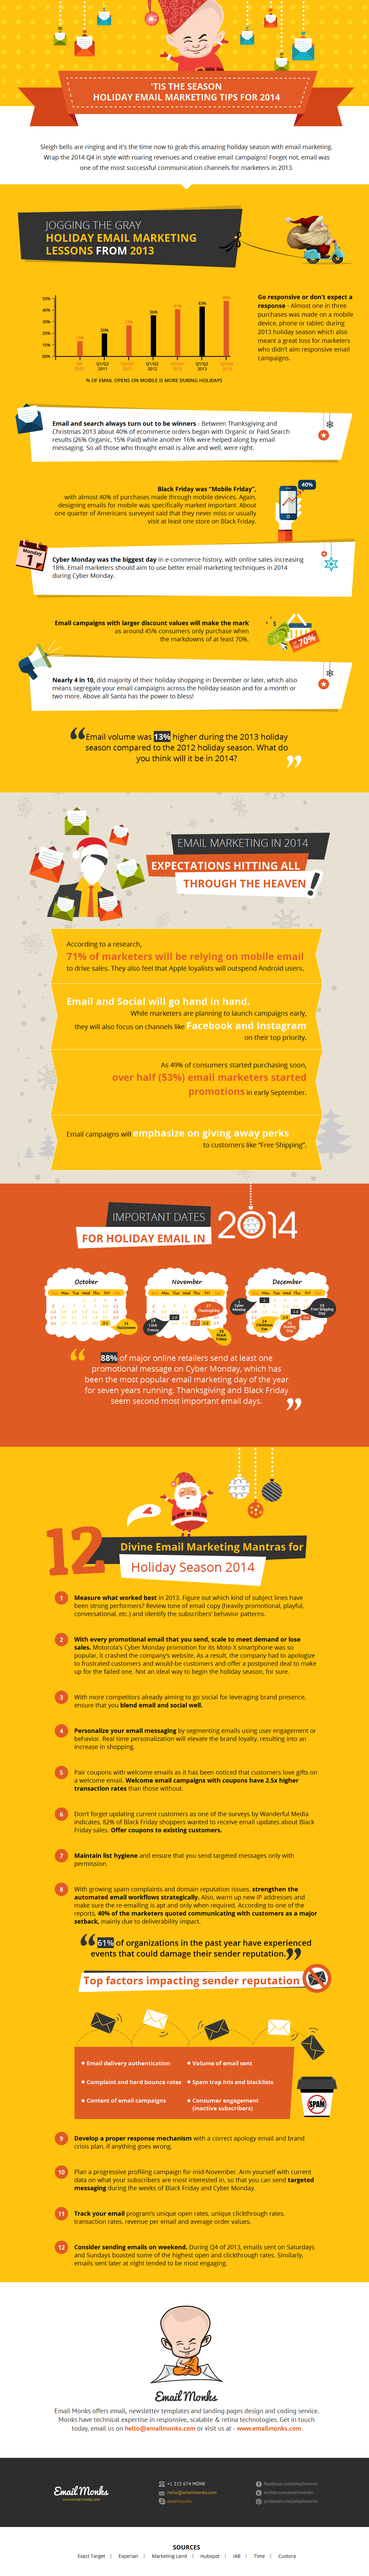 emailmonks holiday email marketing 1099px